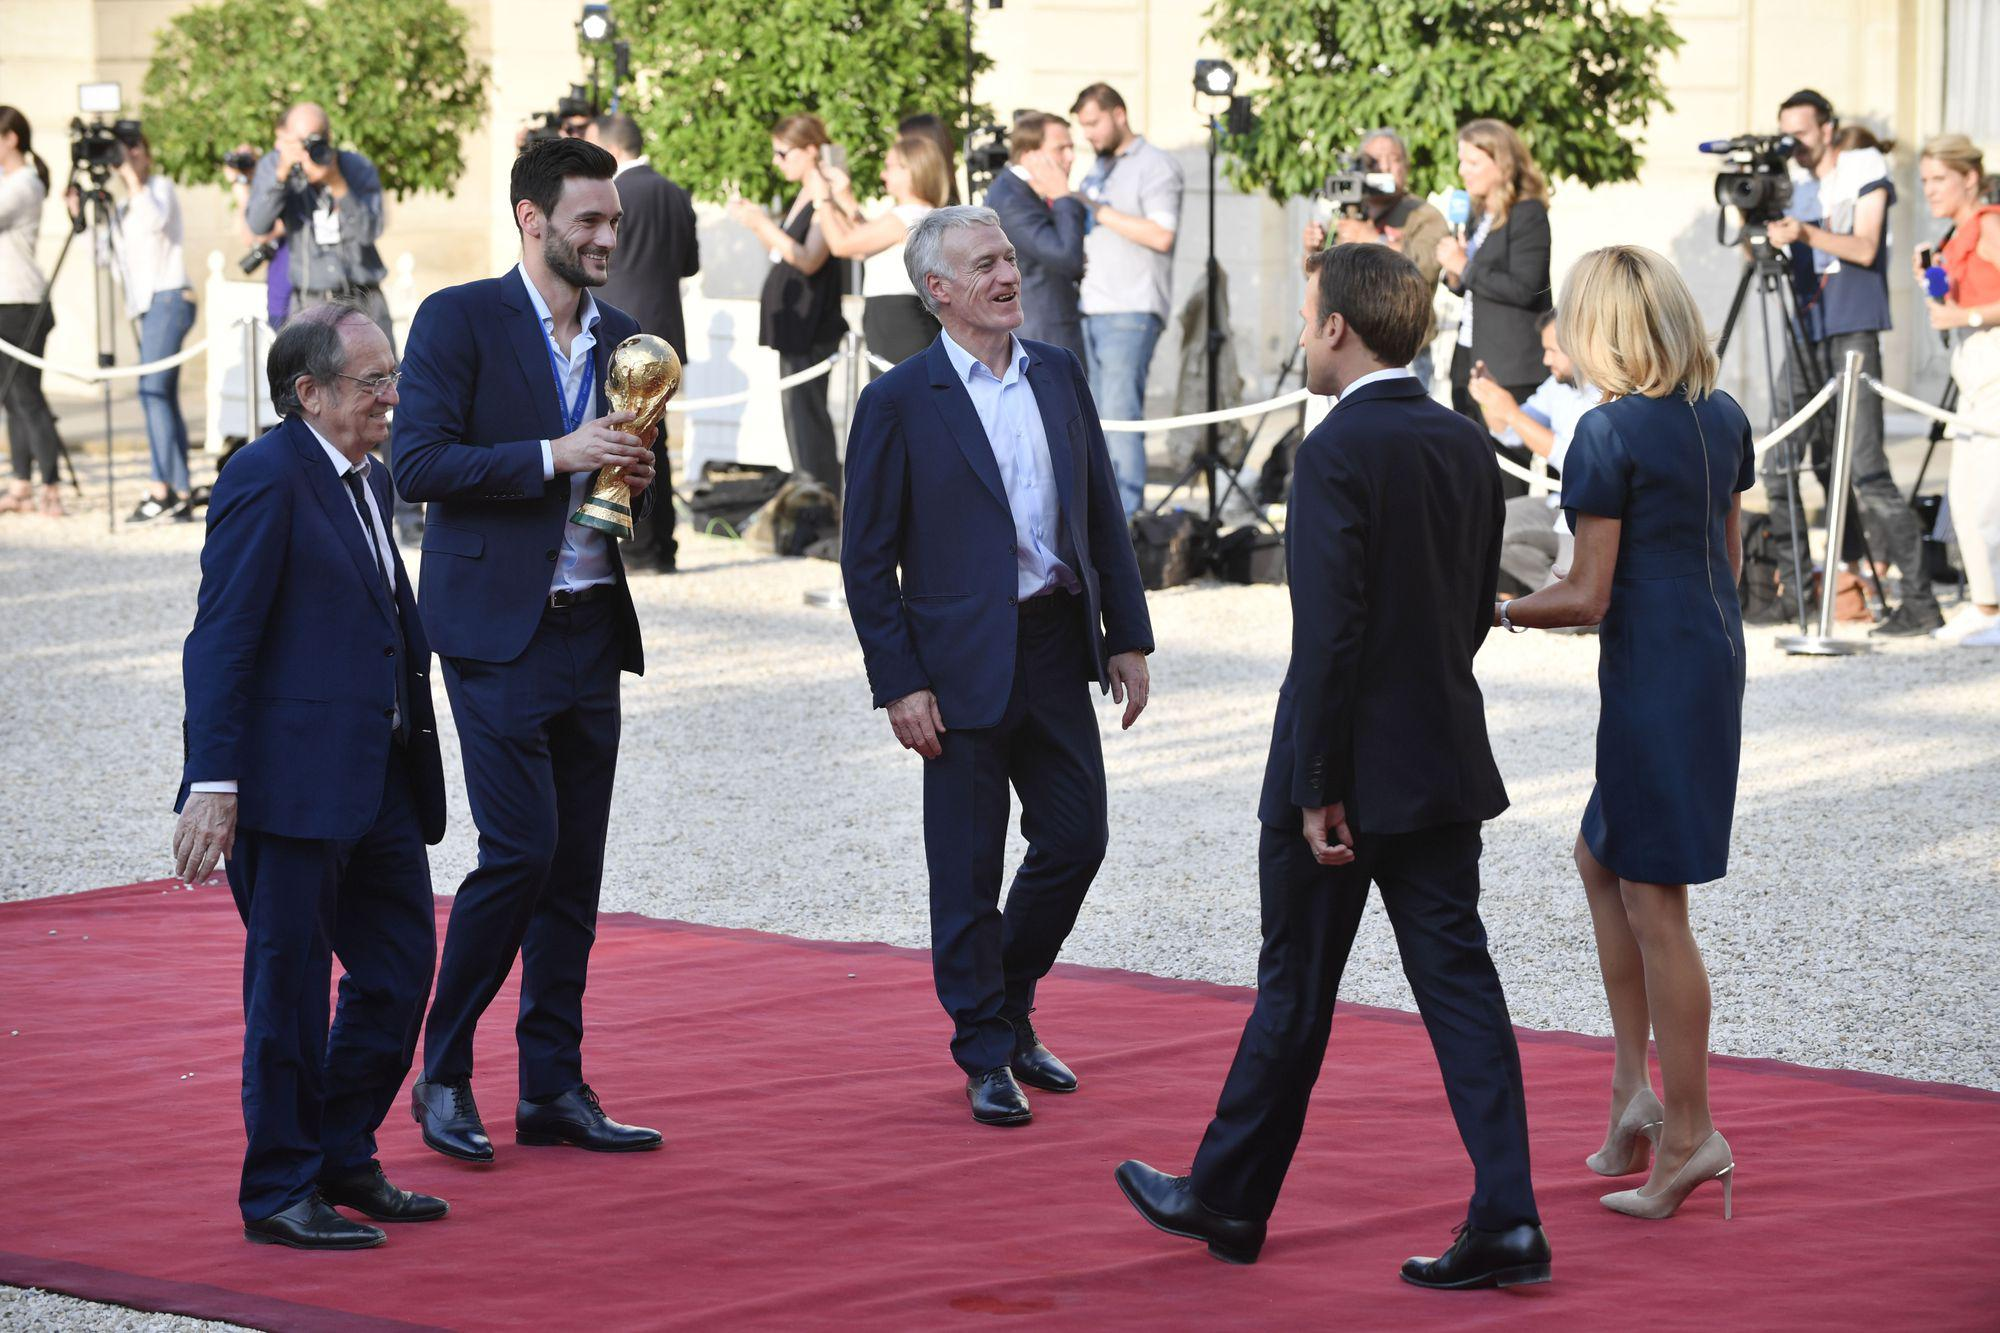 epa06893553 French President Emmanuel Macron and French First Lady Brigitte Macron welcomes the France's national soccer team at the Elysee Palace, in Paris, 16 July 2018. France won 4-2 the FIFA World Cup 2018 final against Croatia in Moscow, on 15 July.  EPA-EFE/JULIEN DE ROSA